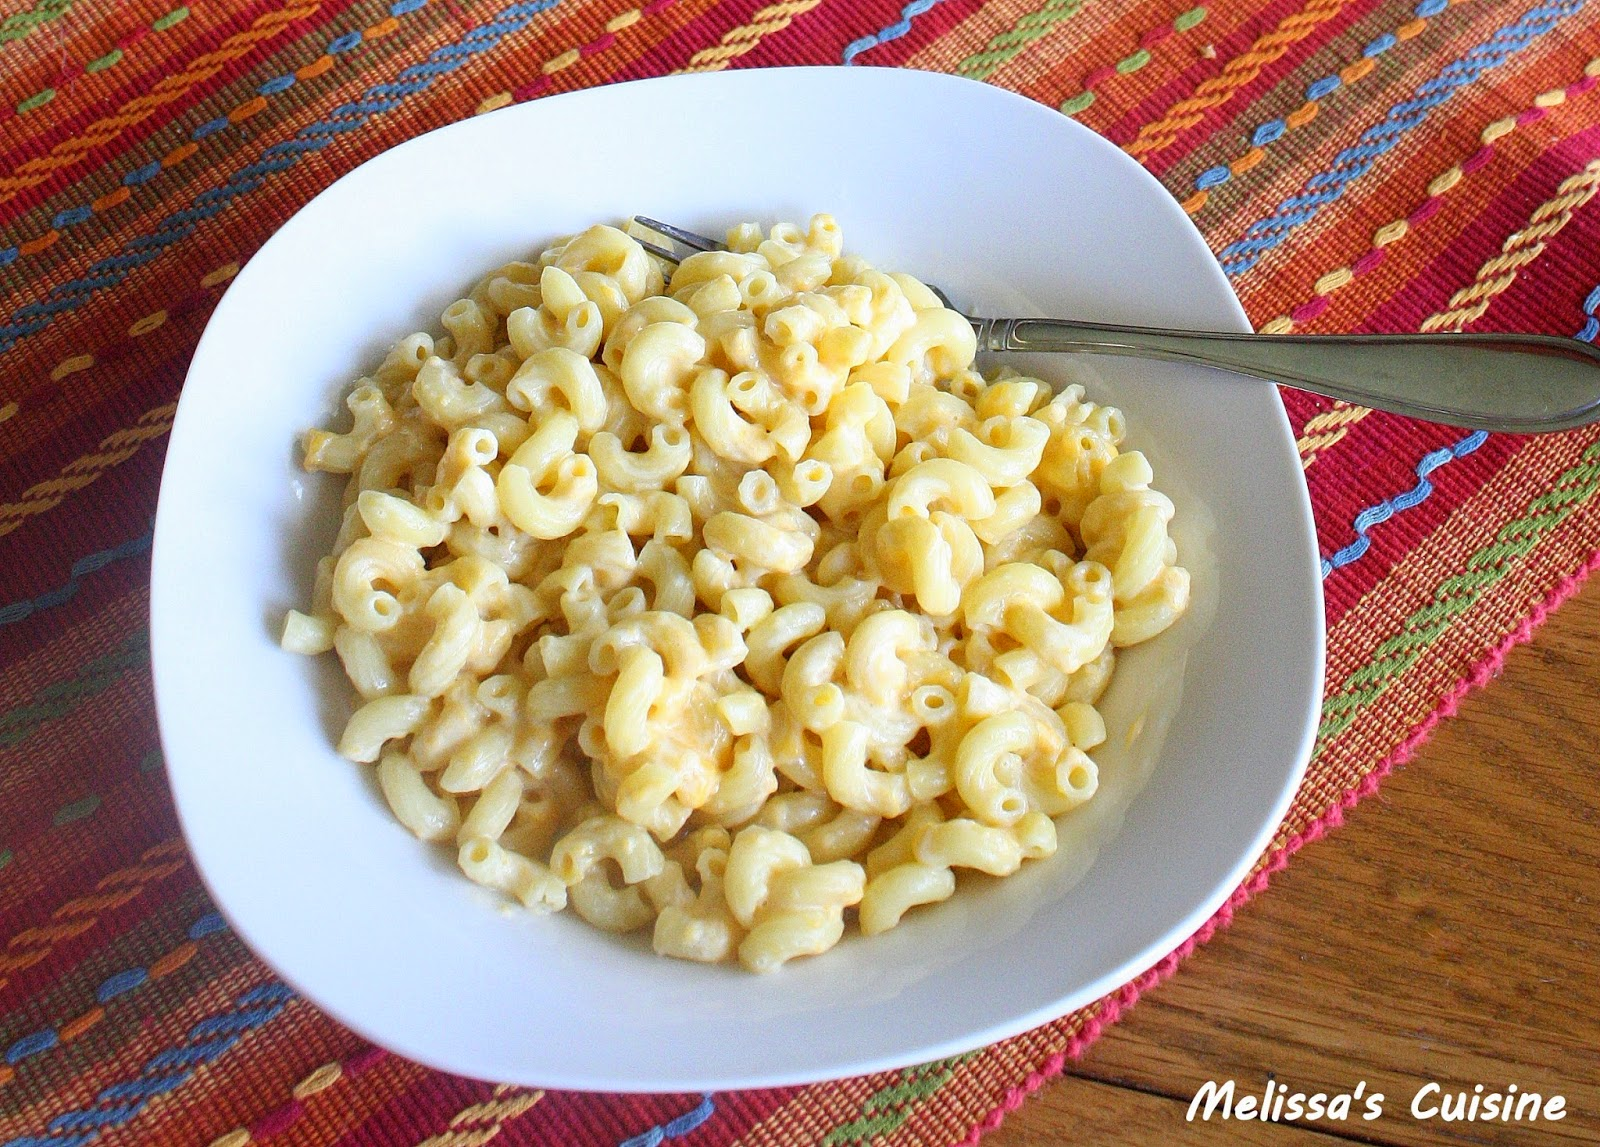 Melissa's Cuisine: 3 Ingredient Mac and Cheese